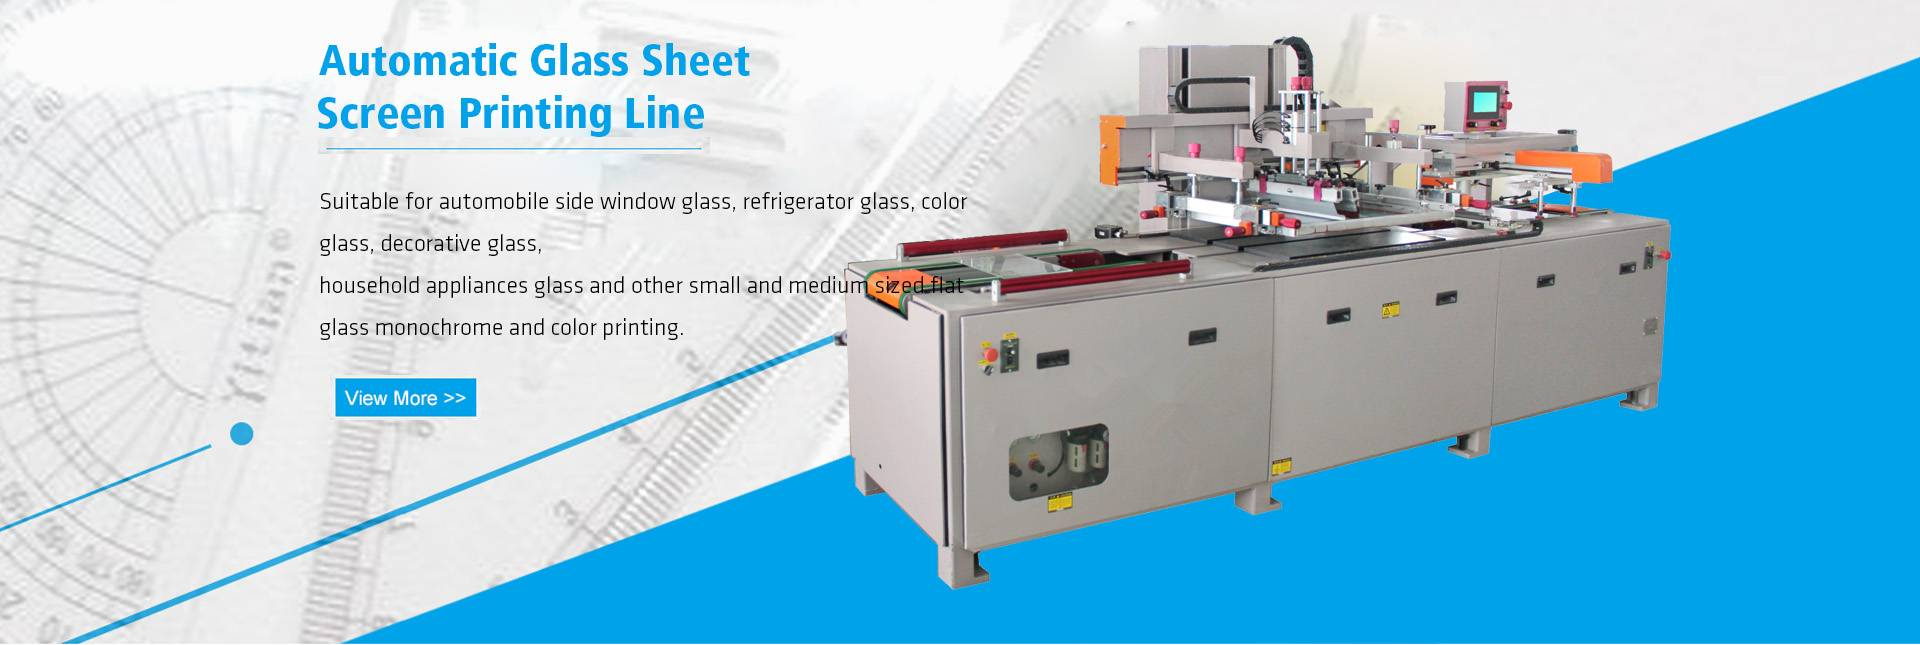 Flat sheet screen printing machine